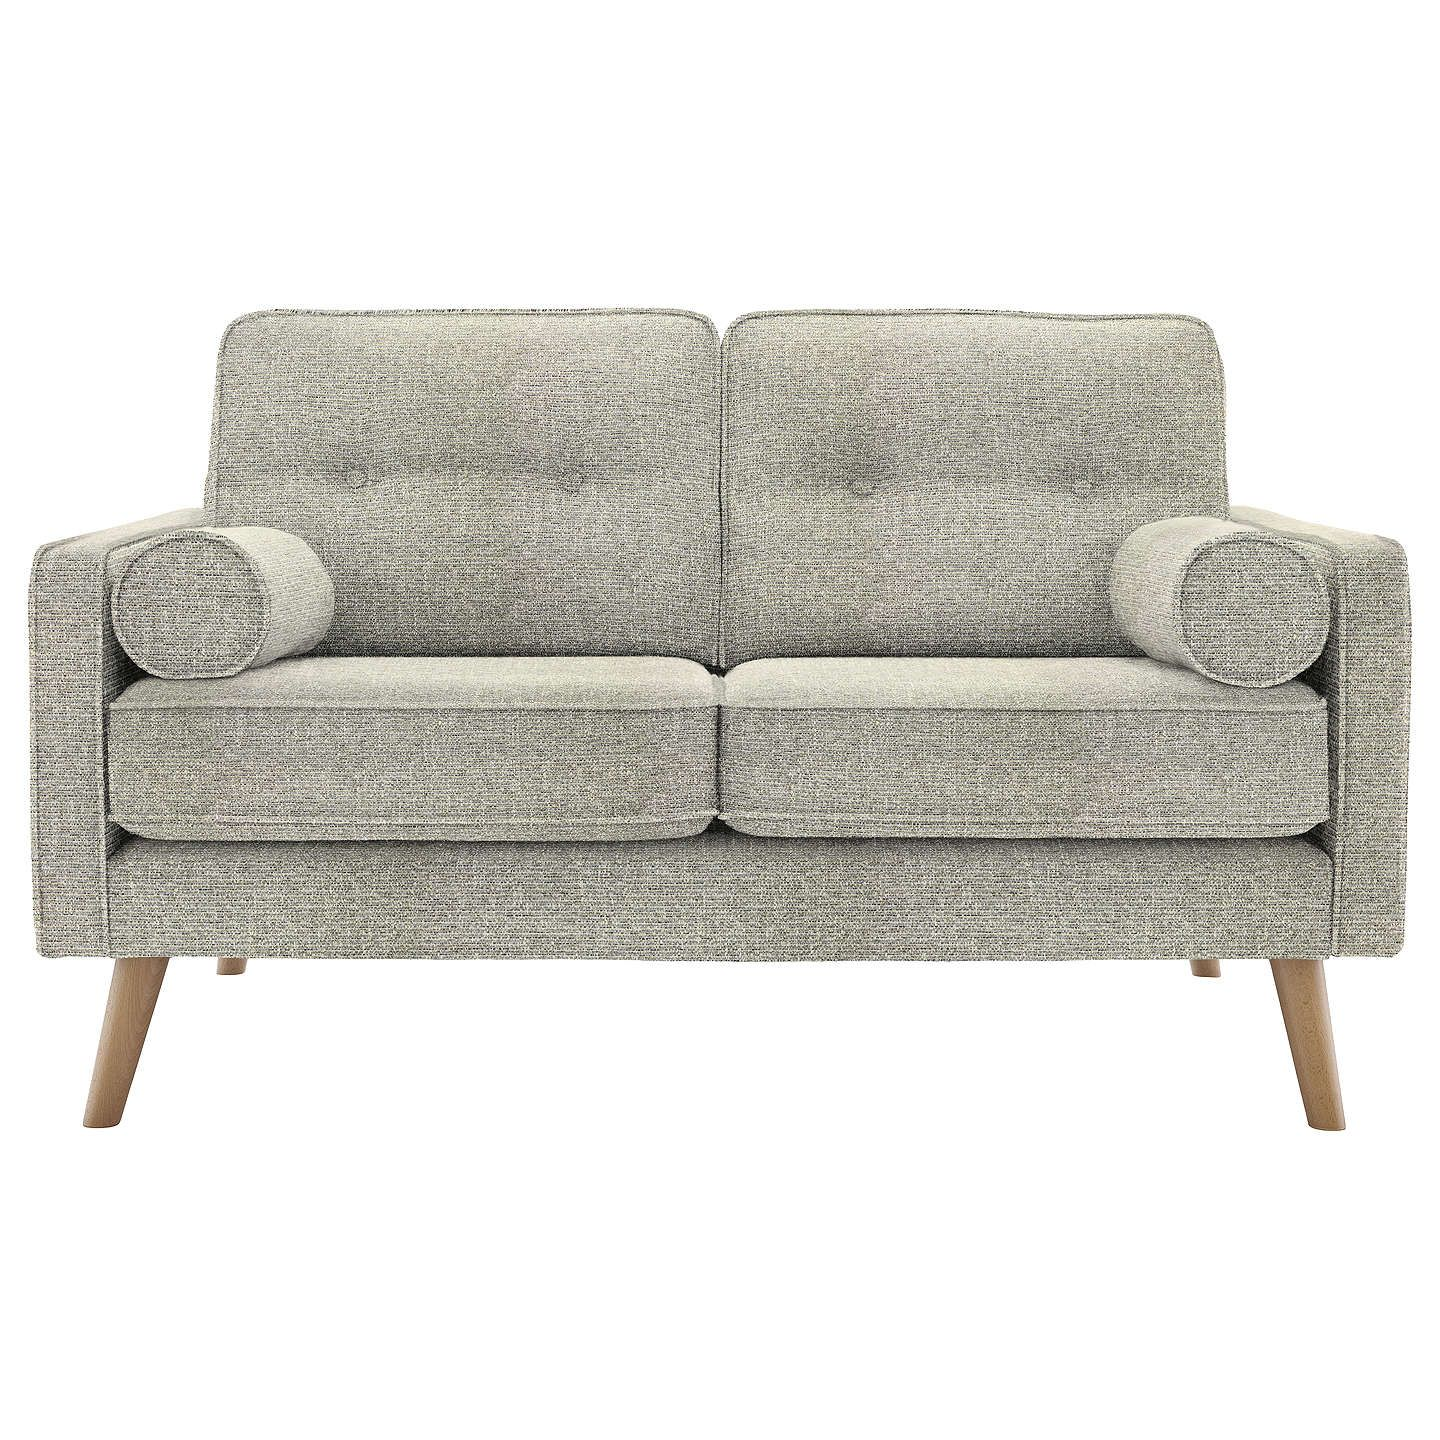 G Plan Vintage The Sixty Five Small 2 Seater Sofa Bobble